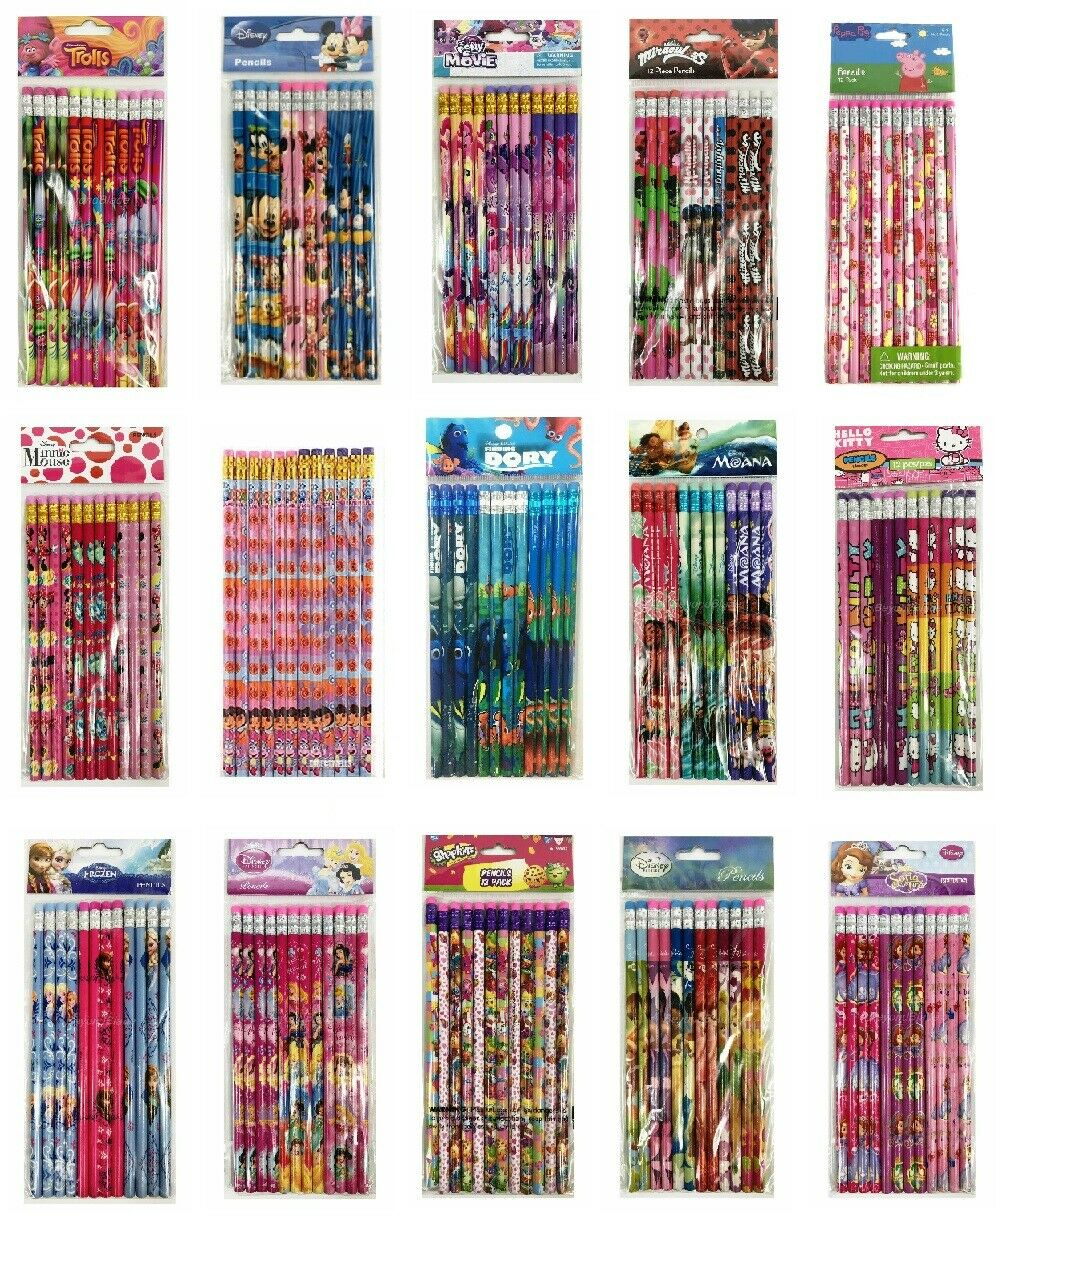 12 PC SHOPKINS PENCIL FOR SCHOOL BACKPACK SUPPLIES kids PARTY FAVORS GIFT MOOSE